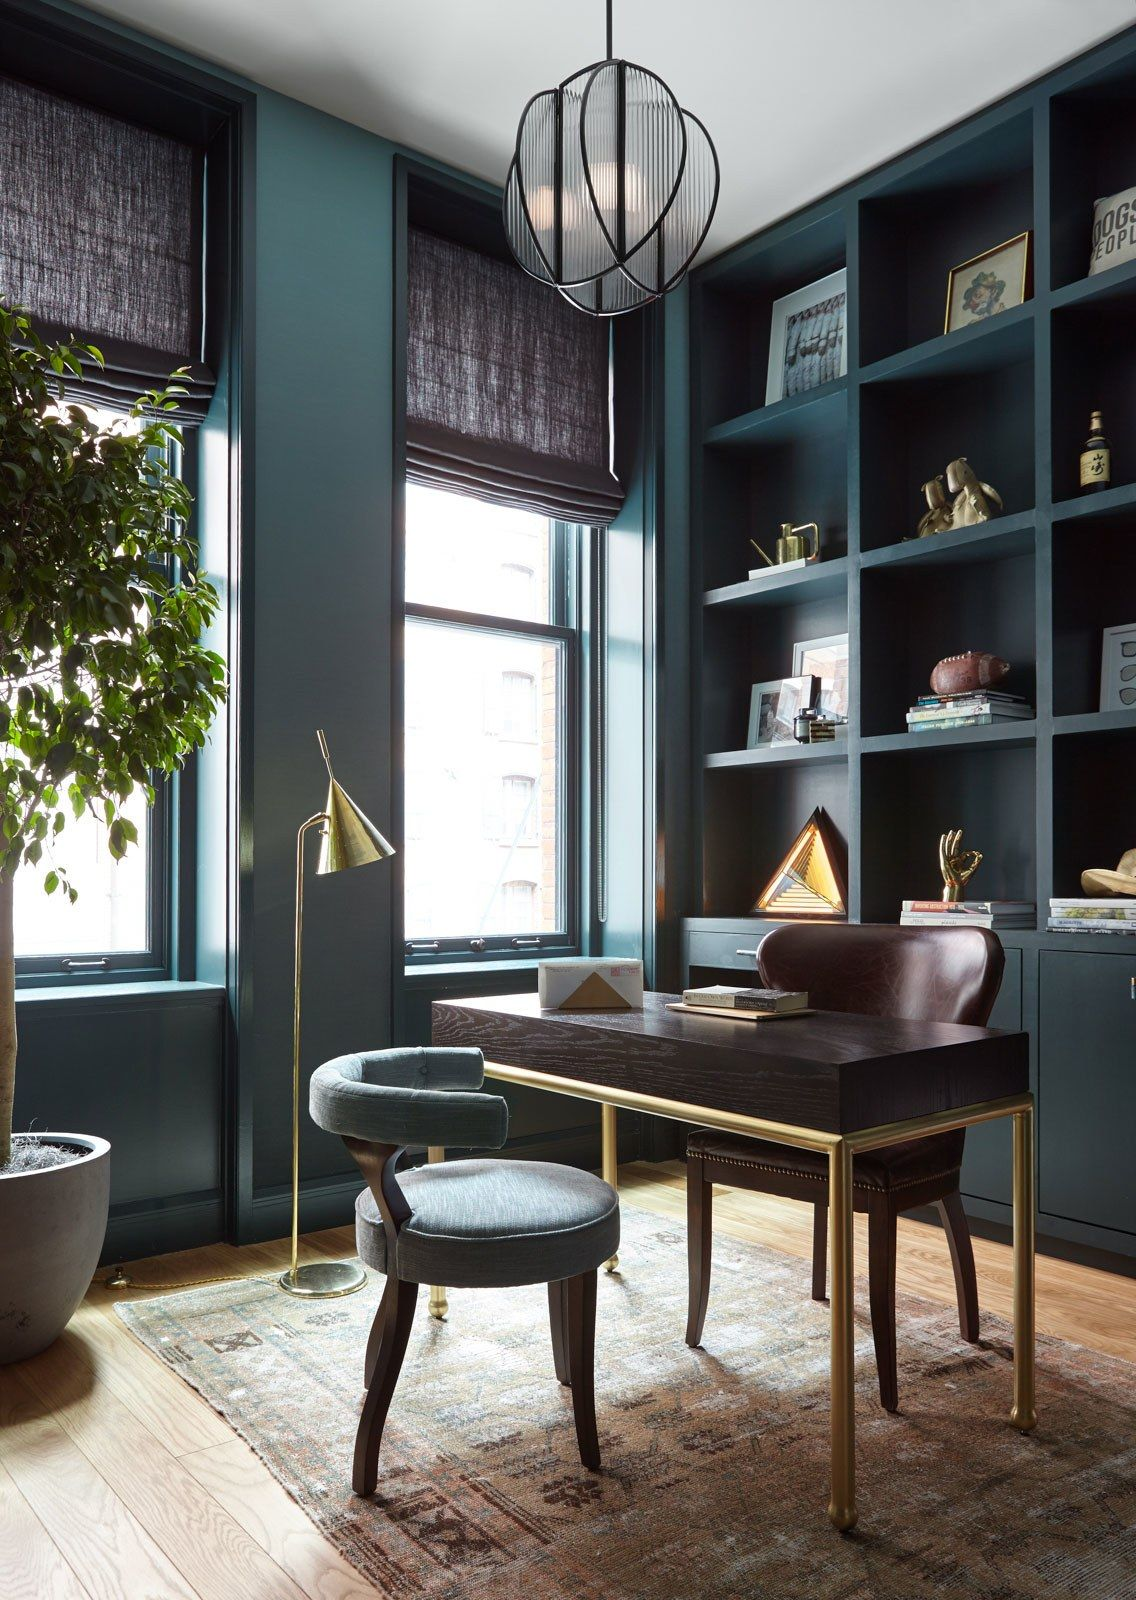 This Refined New York Apartment Is So Much More than a Bachelor Pad Photos | Architectural Digest